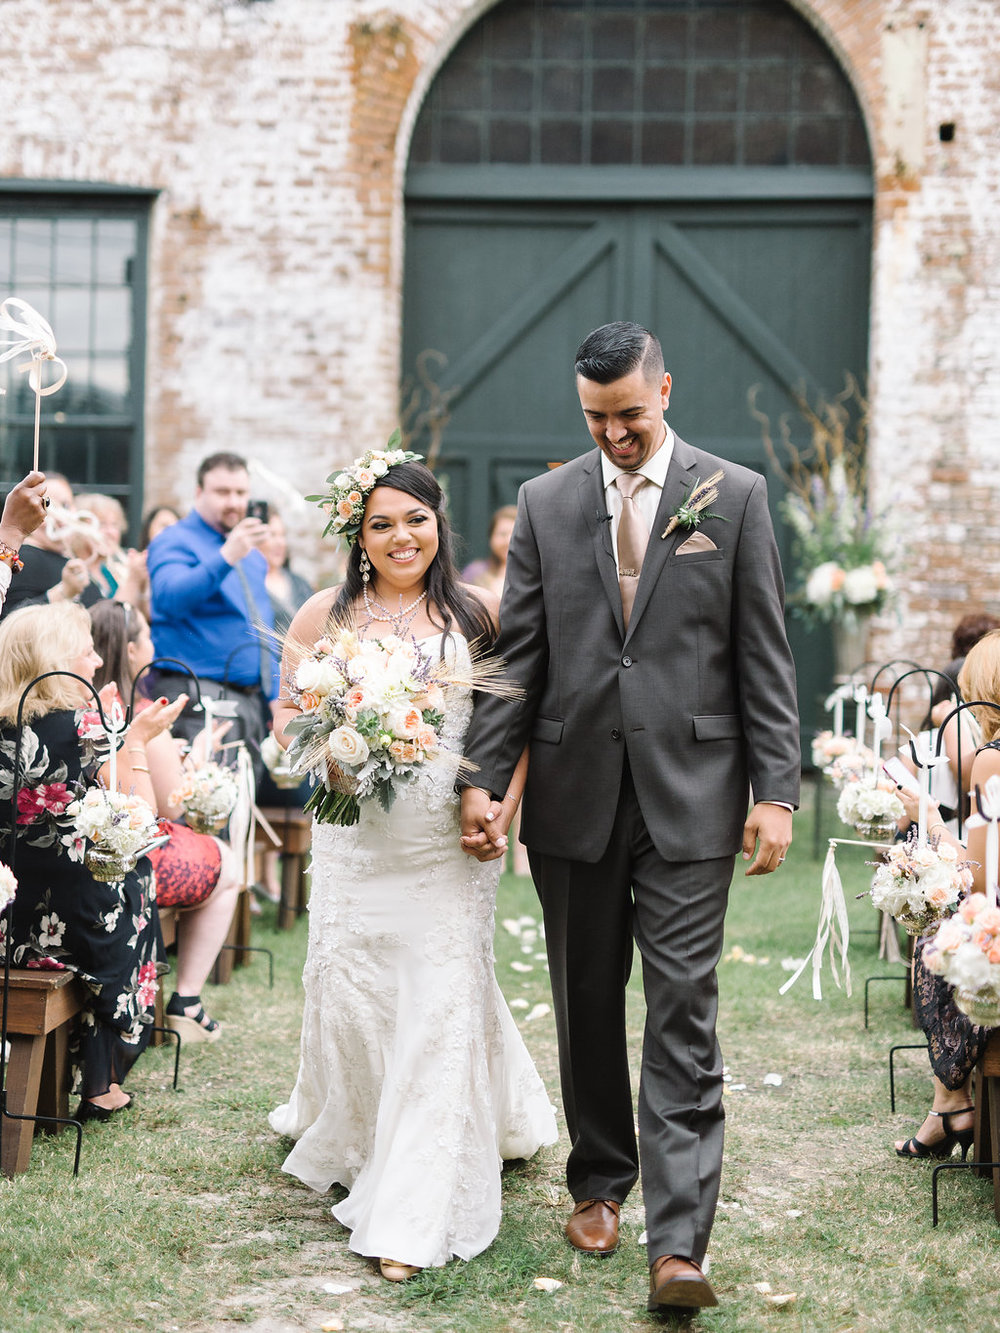 sabrina-and-ivan-rach-loves-troy-photography-ivory-and-beau-savannah-wedding-planner-savannah-day-of-coordinator-roundhouse-railroad-museum-wedding-rustic-savannah-wedding-savannah-bridal-boutique-savannah-weddings-25.jpg